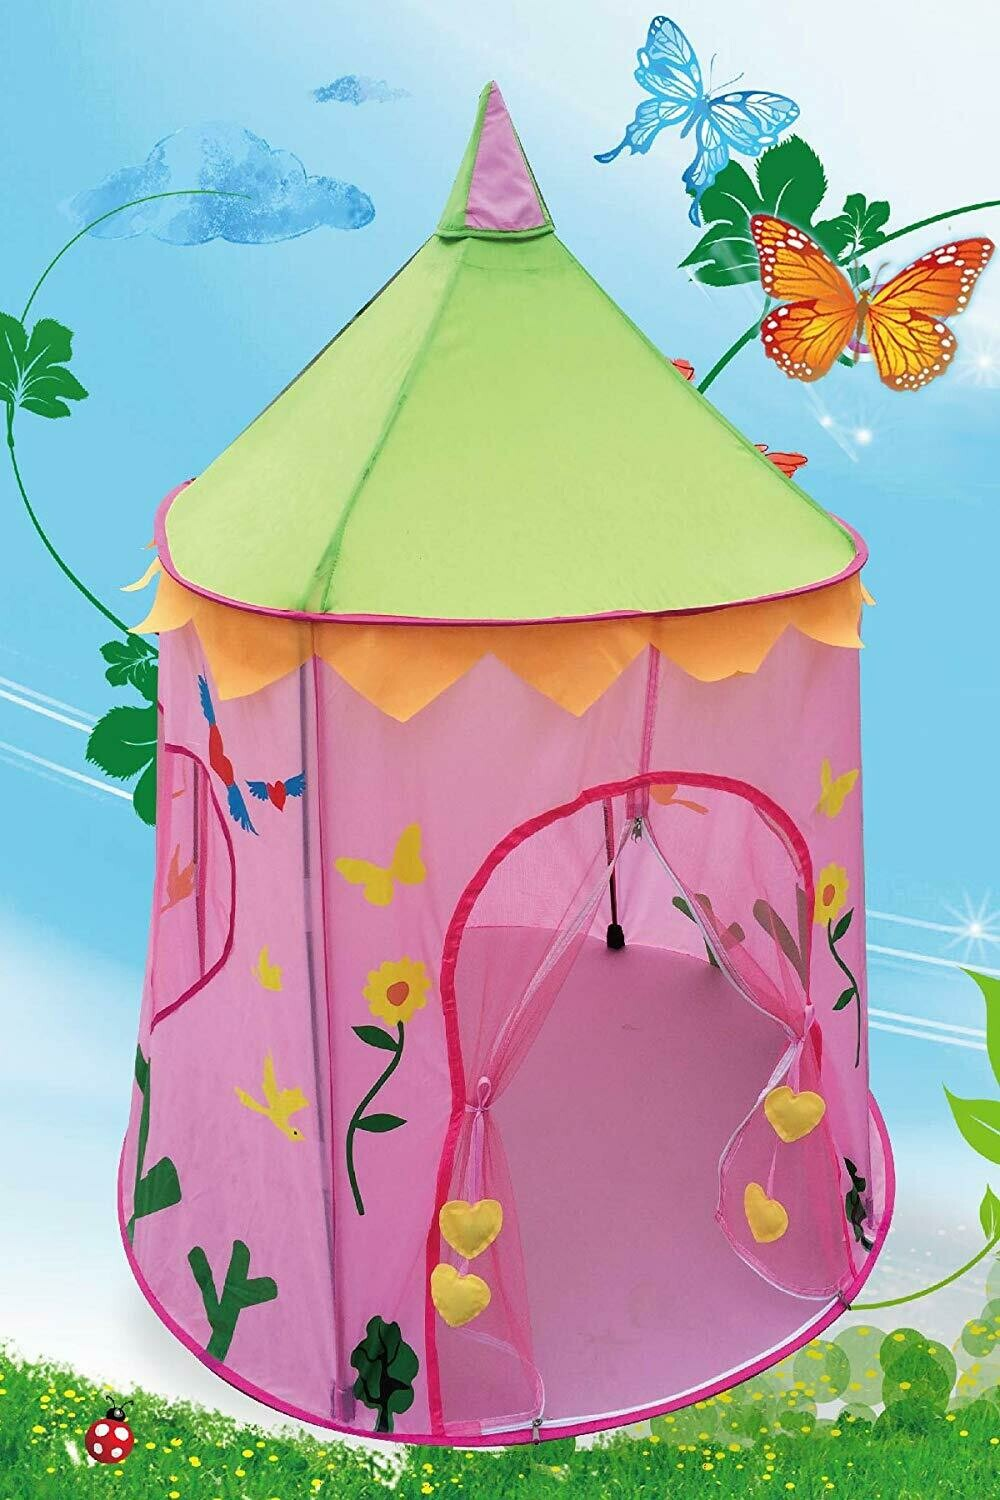 POCO DIVO Wonderland Princess Palace Fairy Castle Pink Play Tent